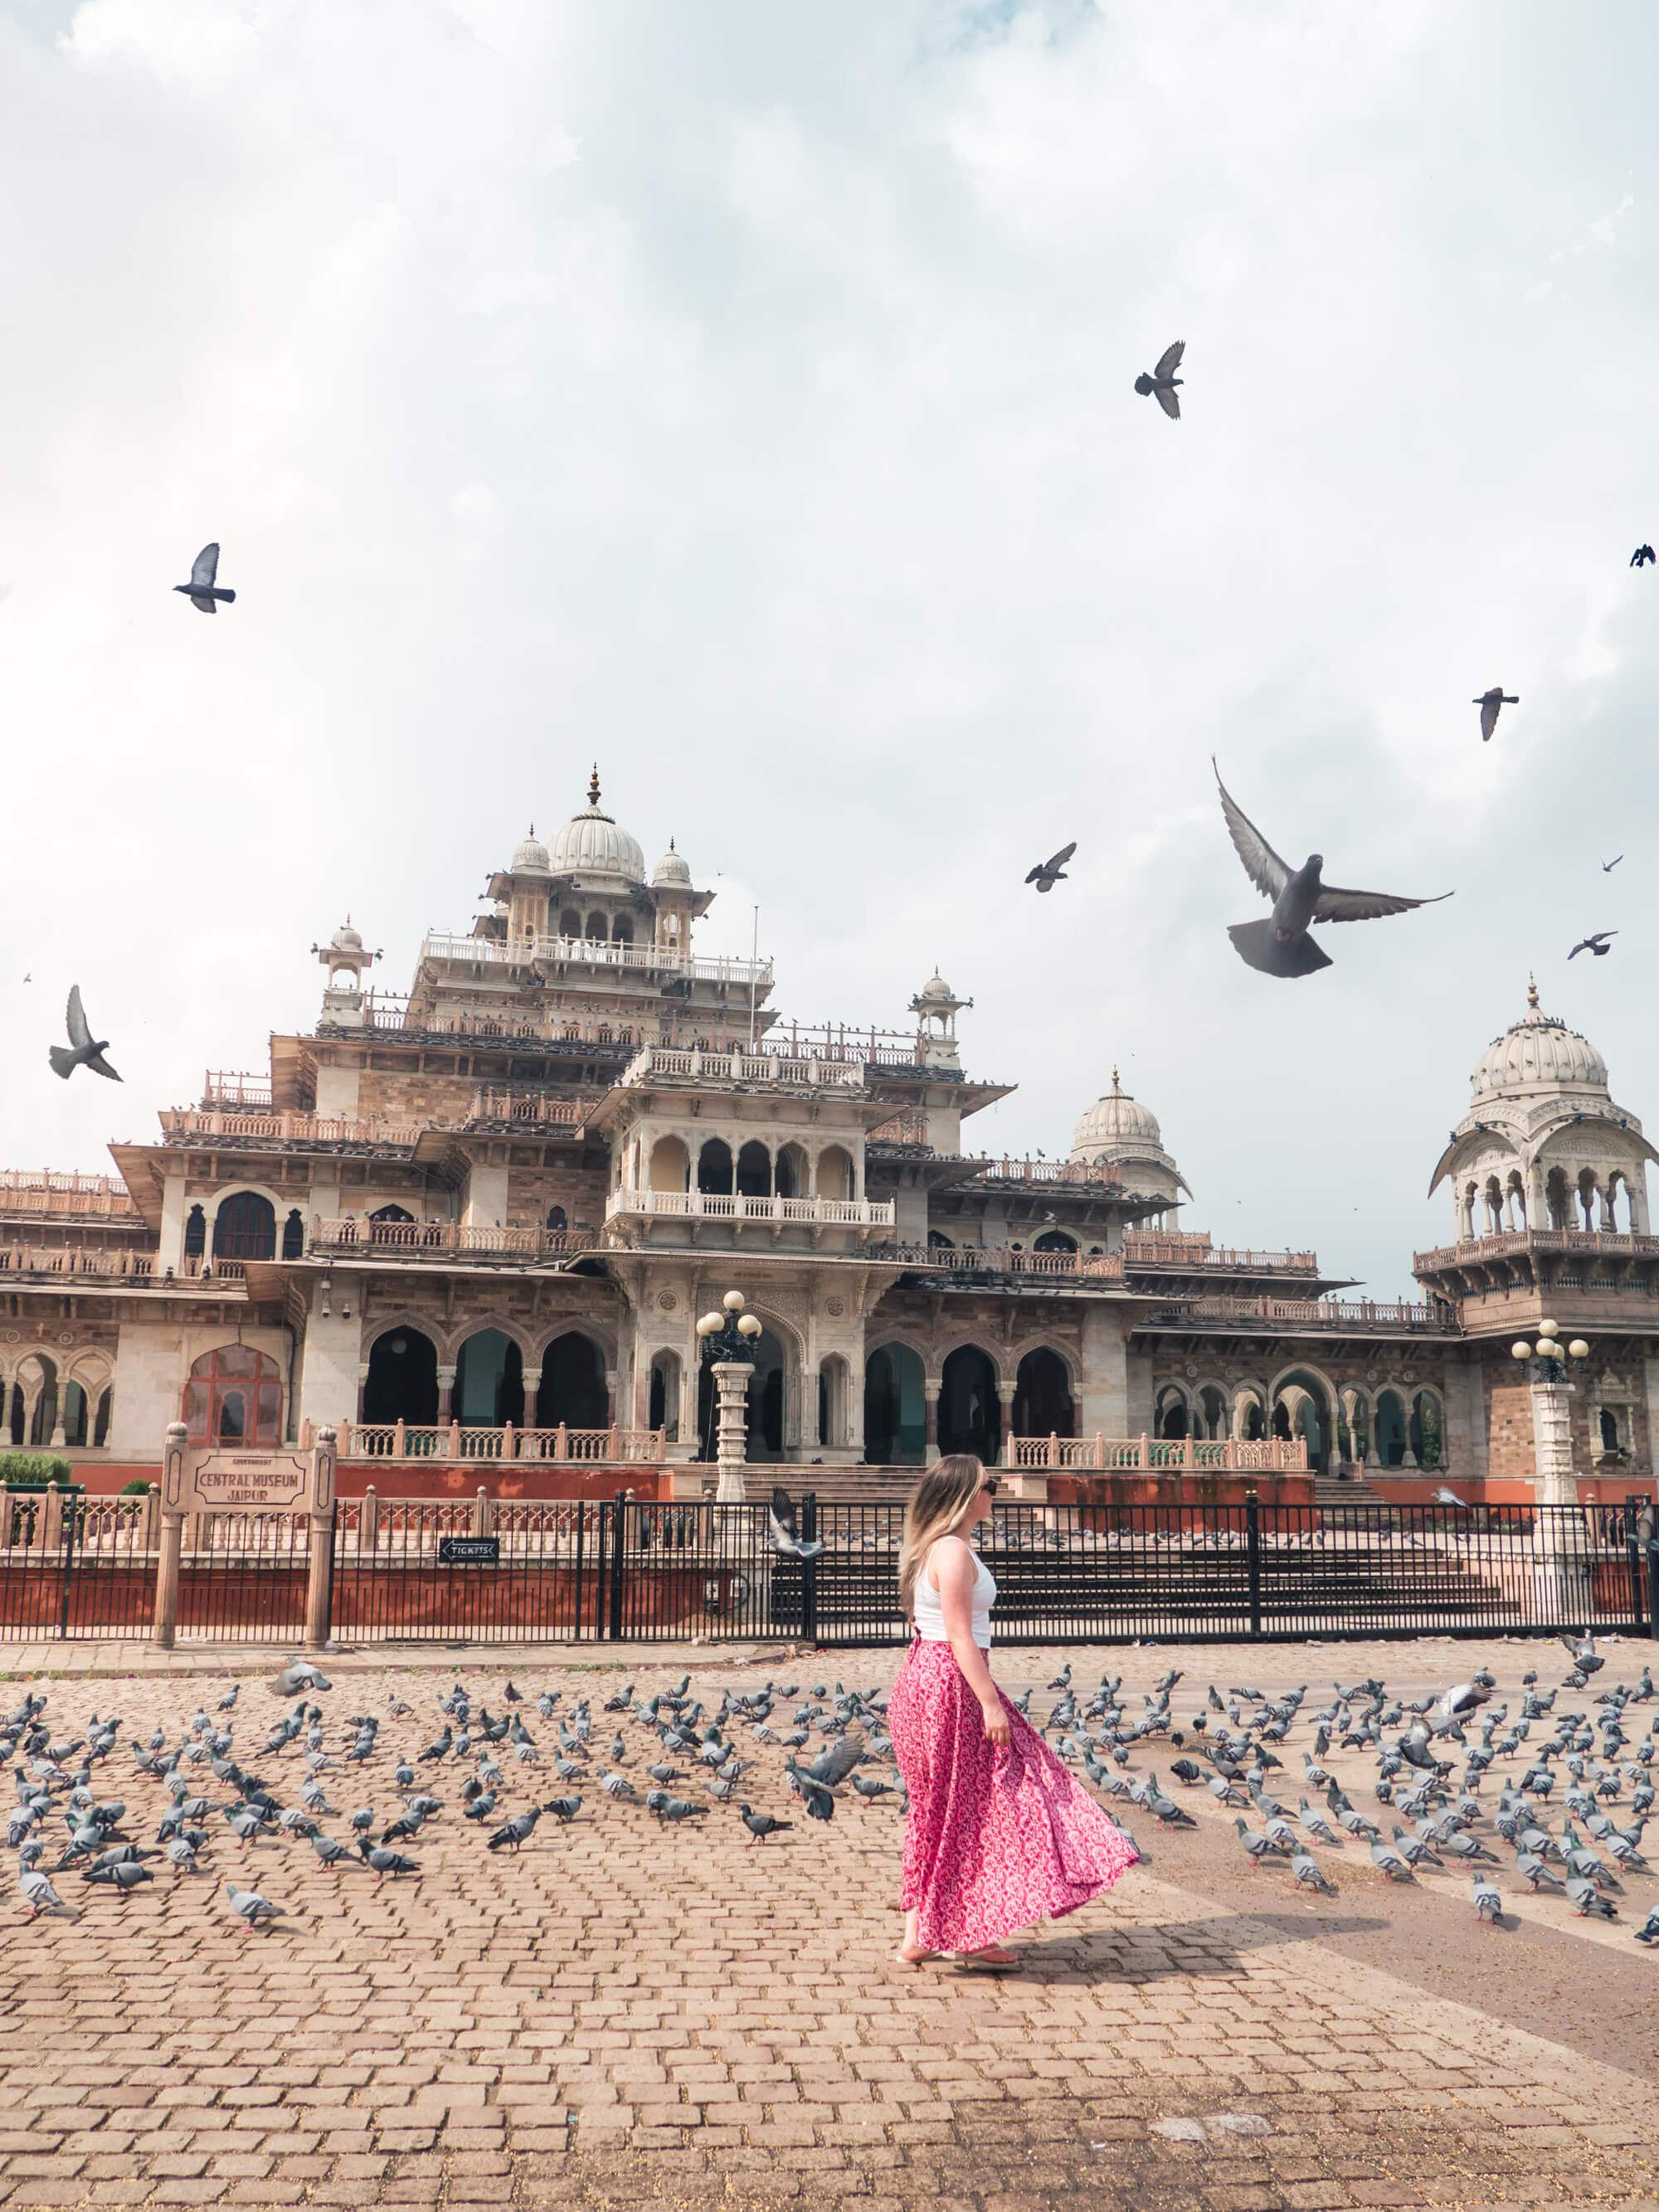 How to spend 2 days in Jaipur - A sea of pigeons in front of Albert Hall Museum